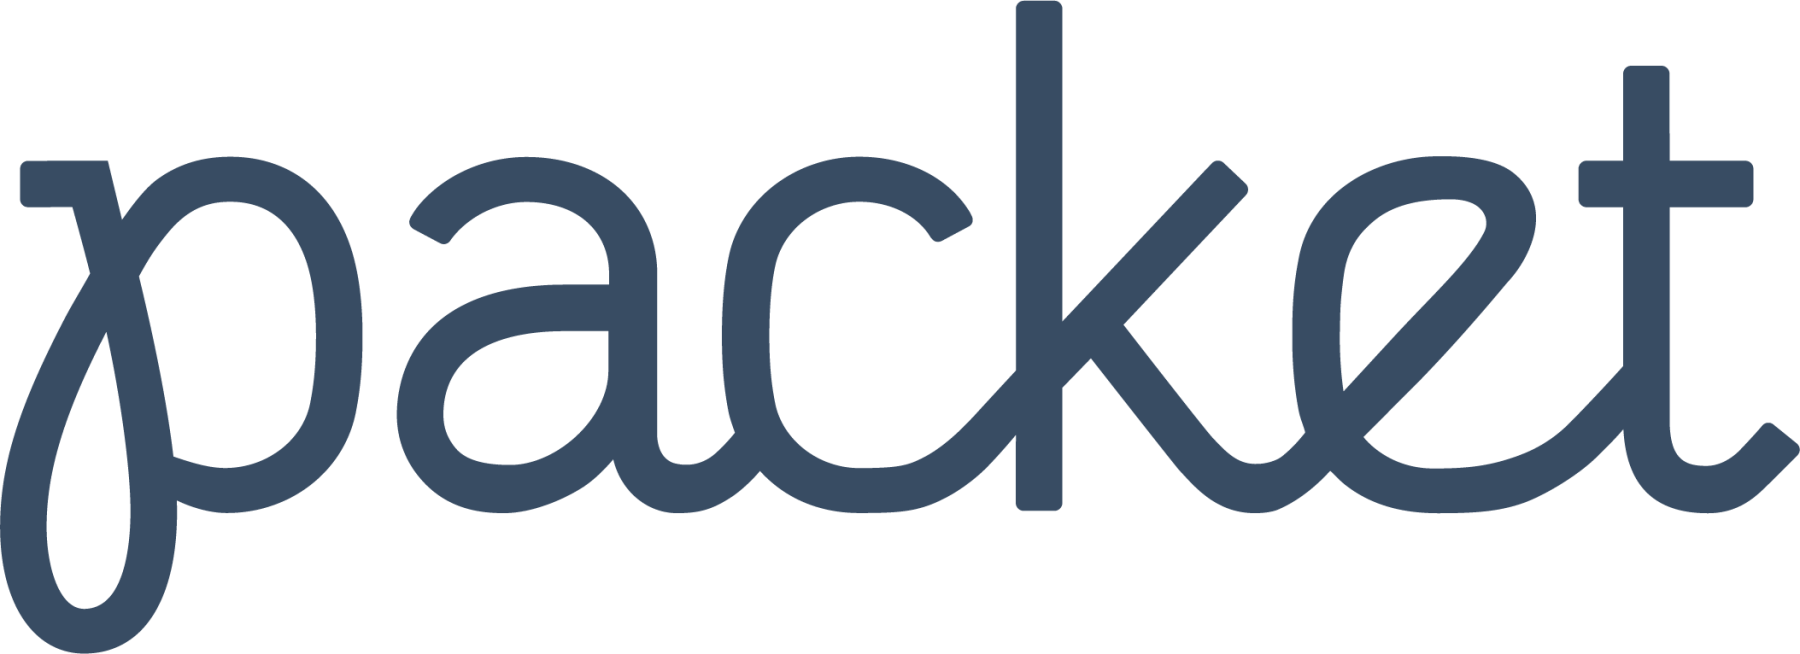 Packet_logo_color